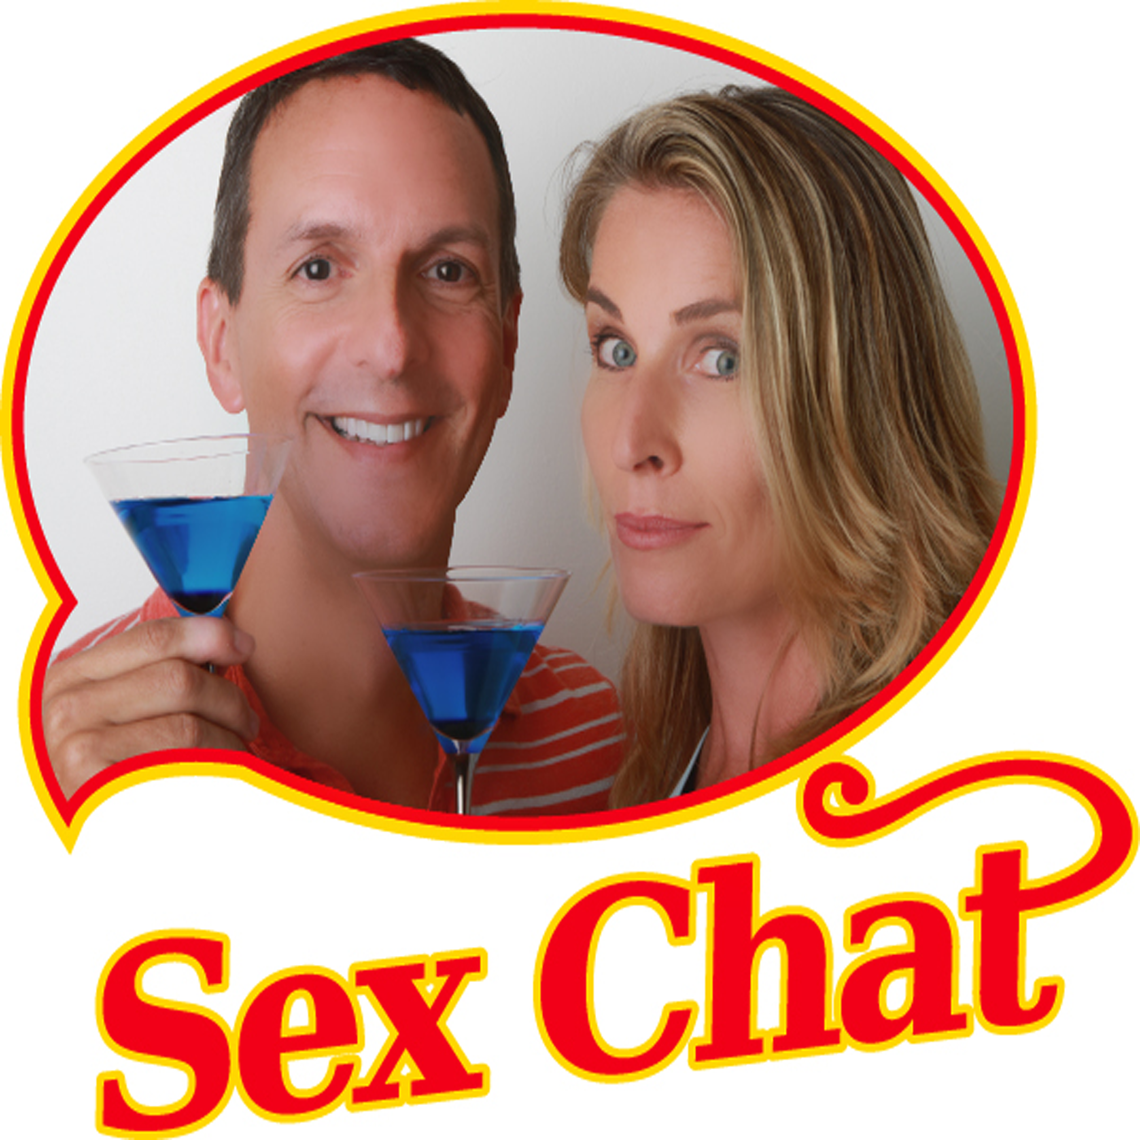 Sex Chat with Dr. Kat and her Gay BF | Sexual